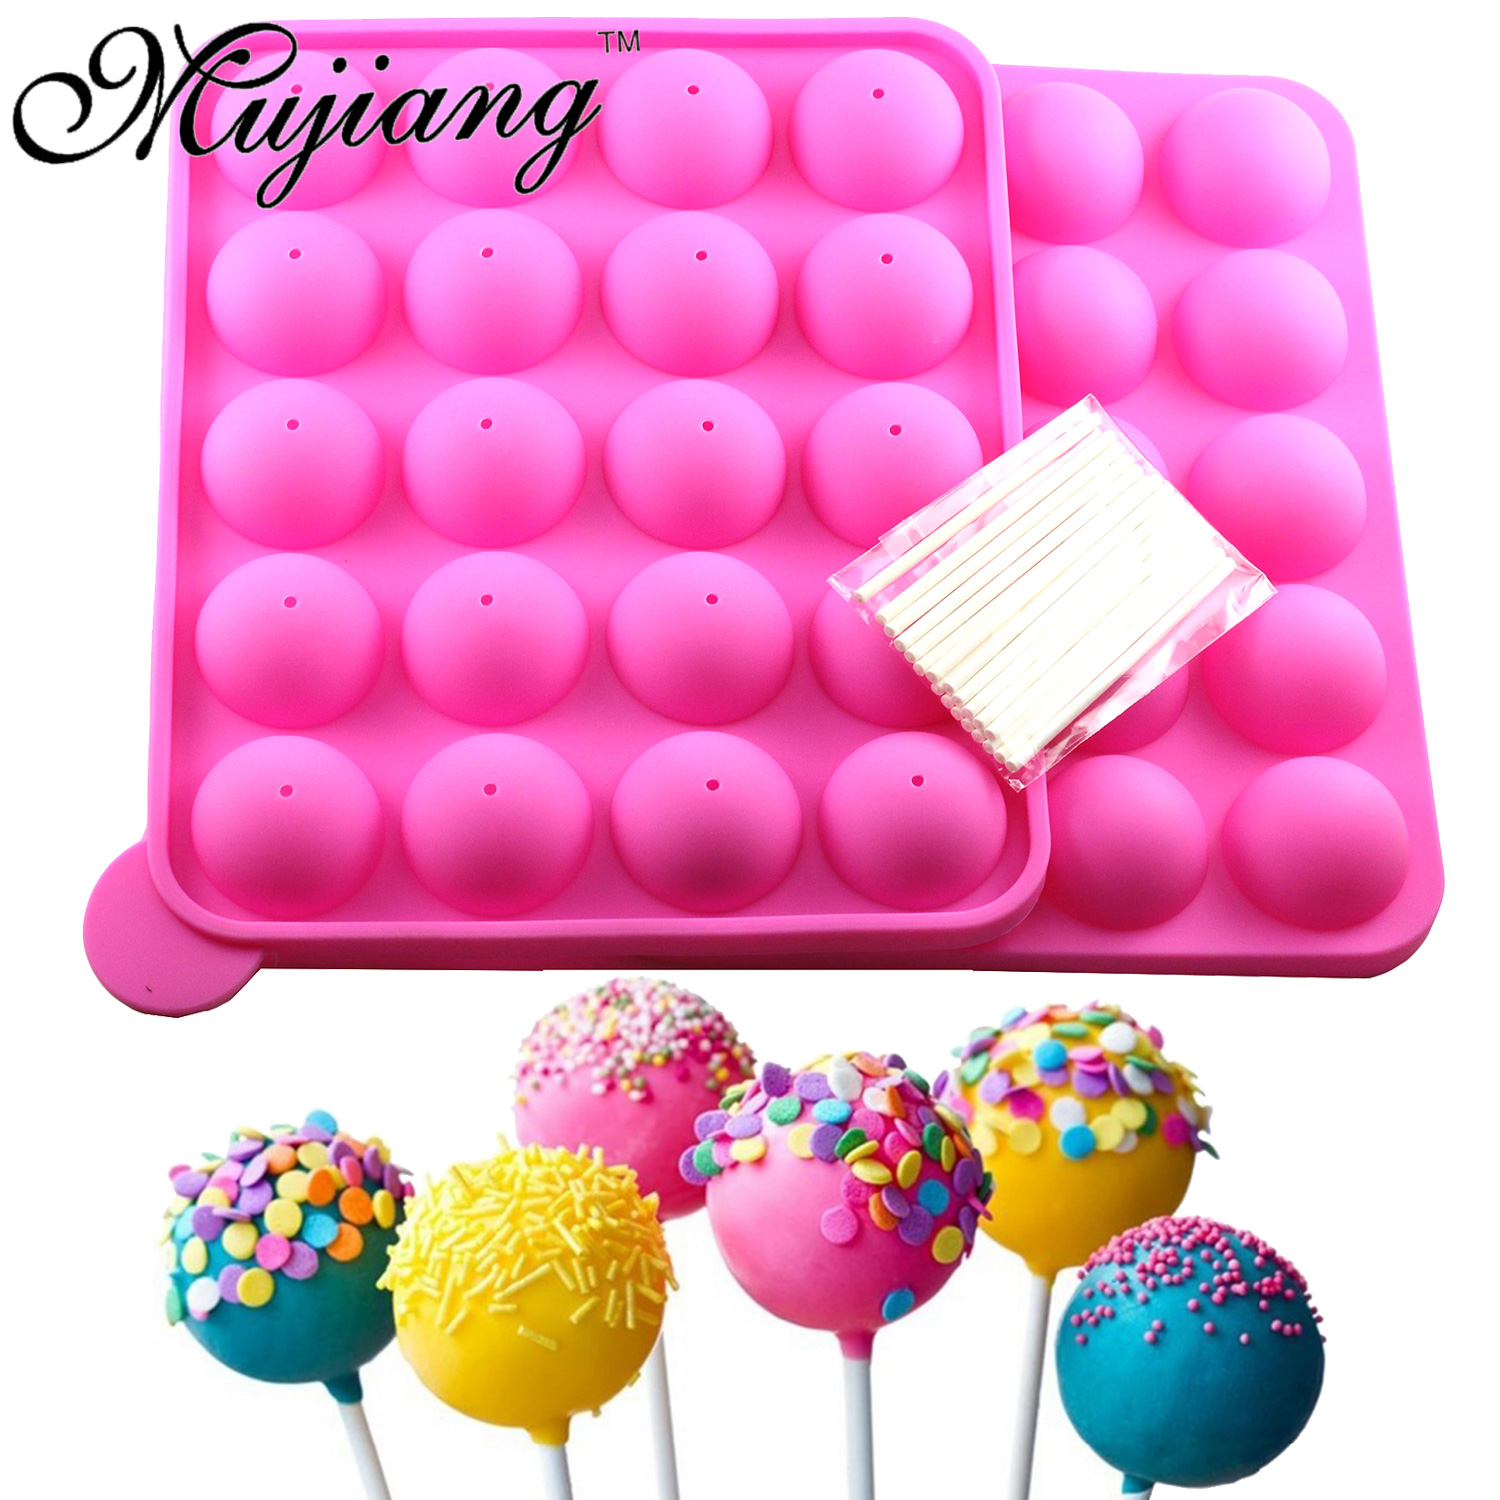 Mujiang 2 Pcs 20 Cavity Round Ball Lollipop Candy Silicone Mold DIY Party Jelly Chocolate Moulds Kitchen Baking Pastry Tools